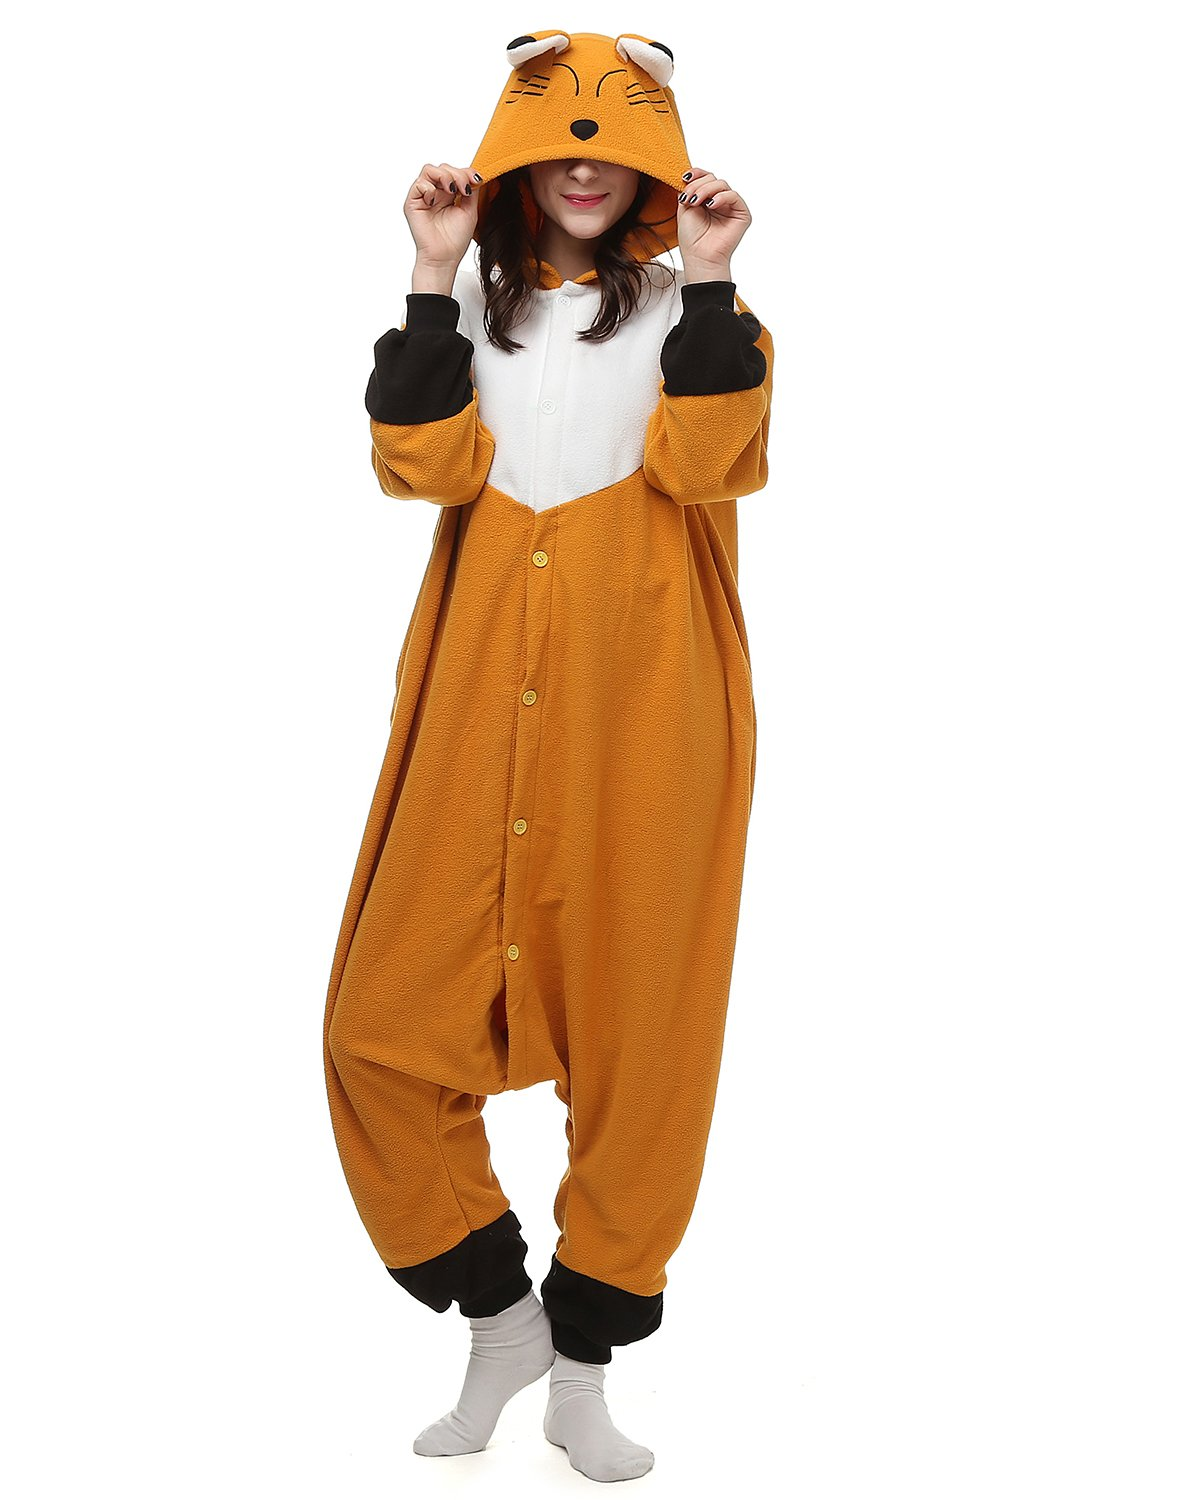 hotu oneises women mens animal fox onesie halloween costume pamamas partywear